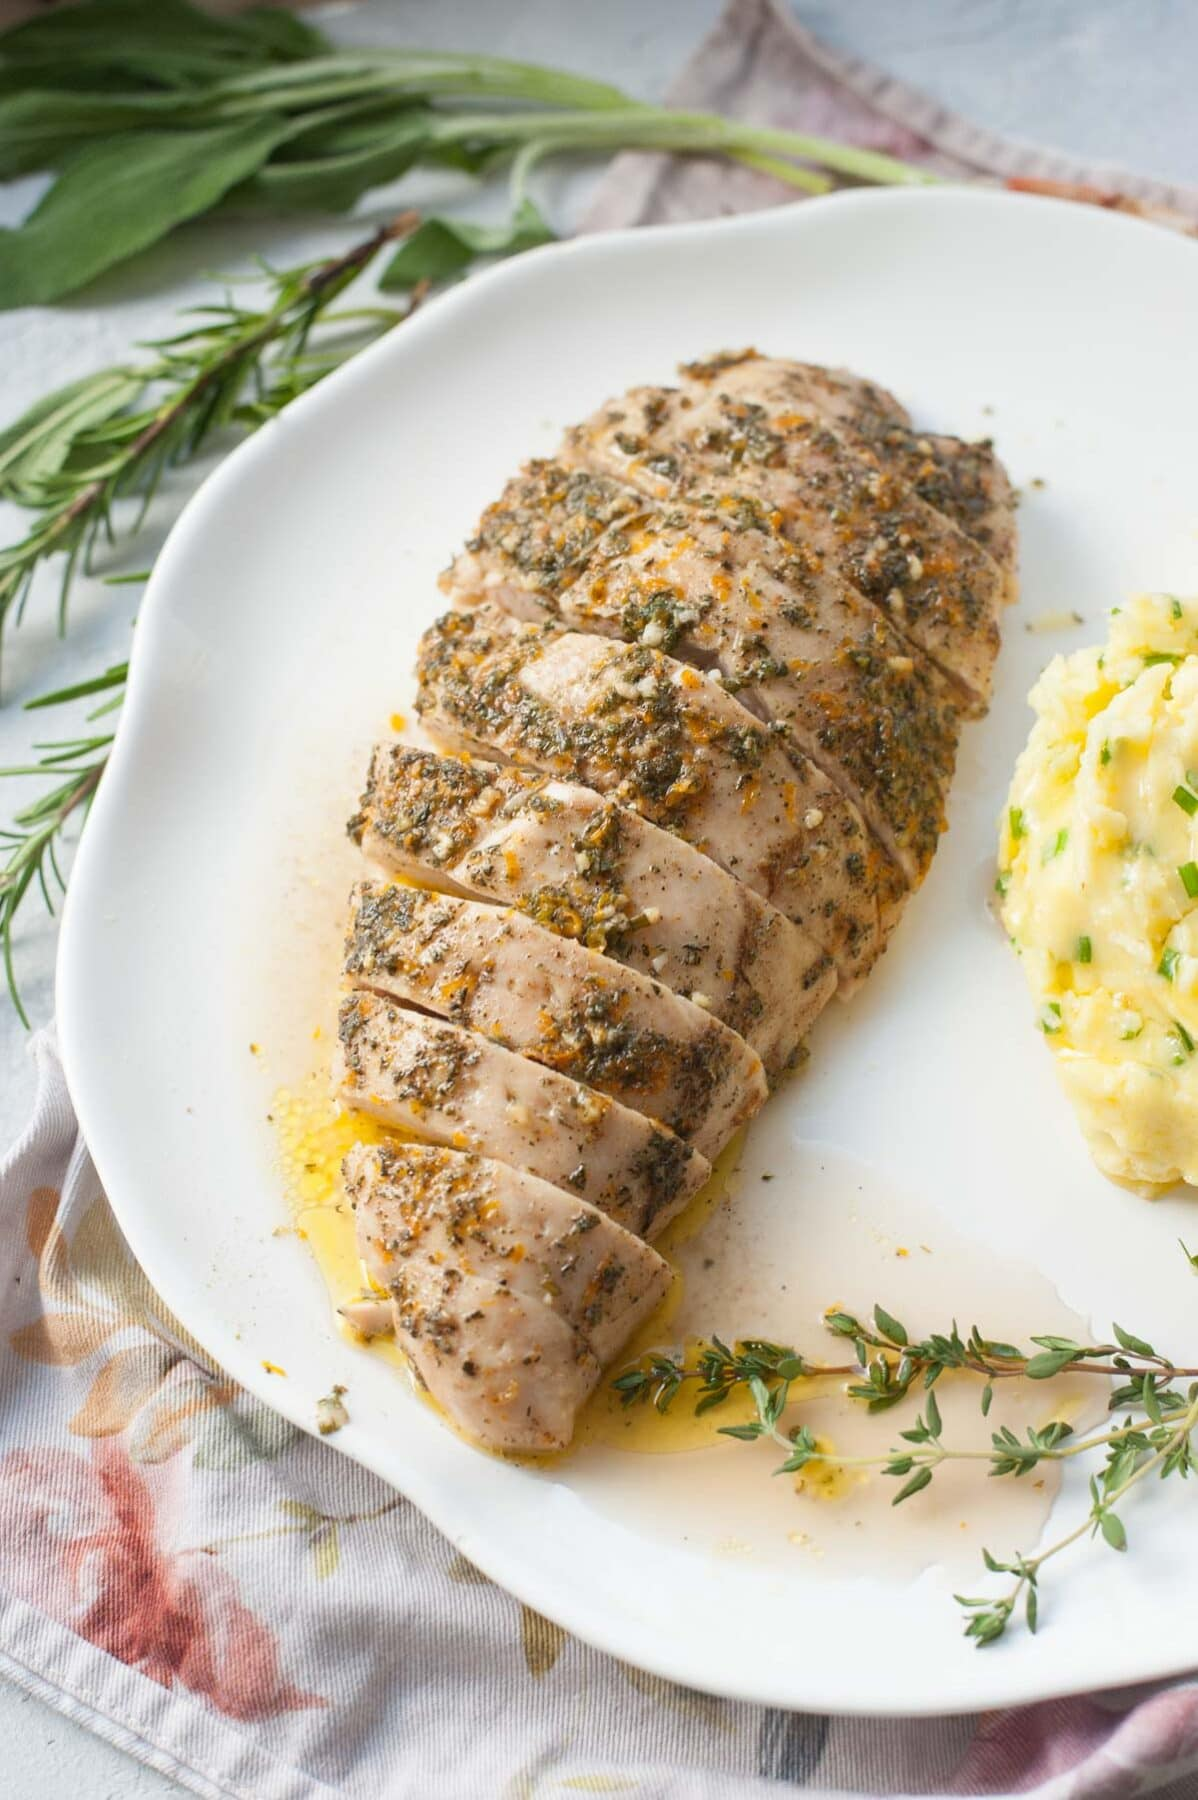 Baked turkey tenderloin cut into slices on a white plate. Herbs in the background.